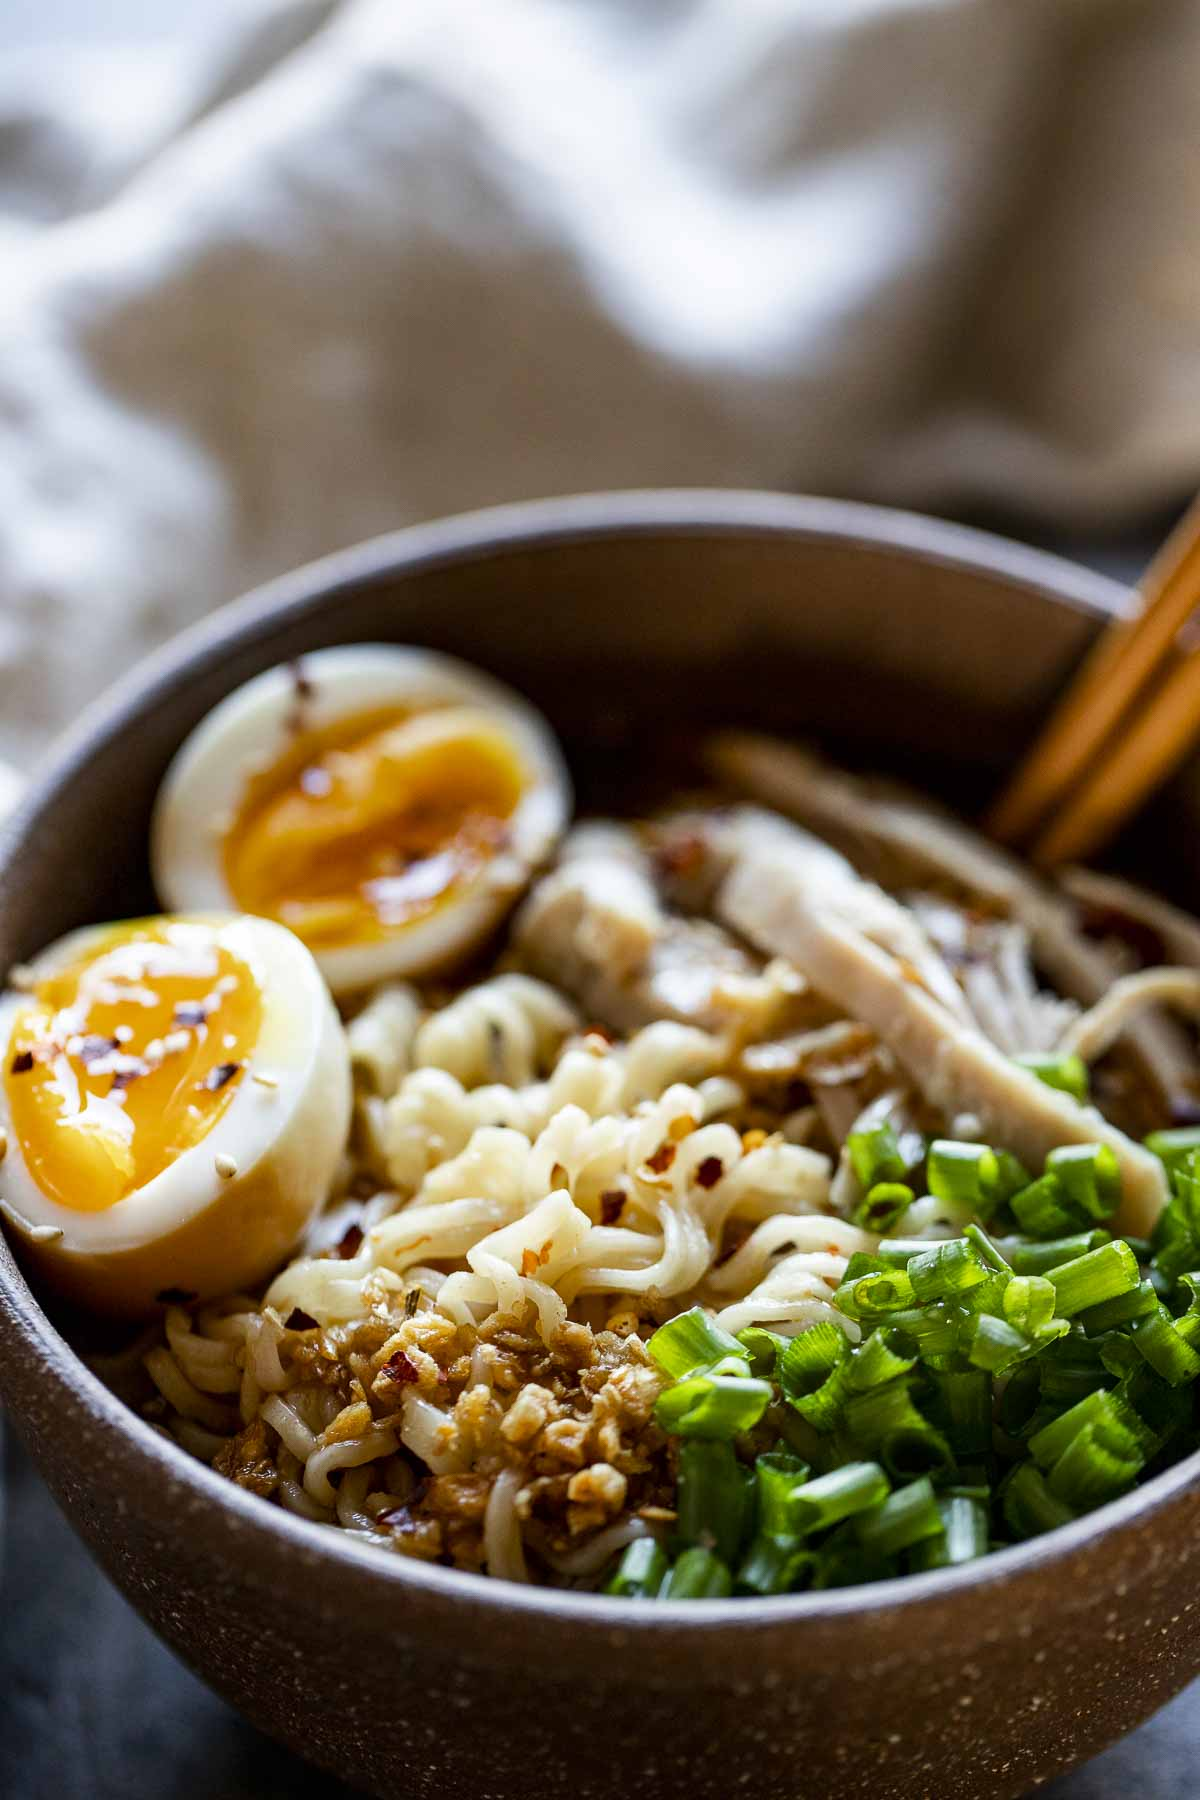 chopsticks in a bowl of ramen noodles